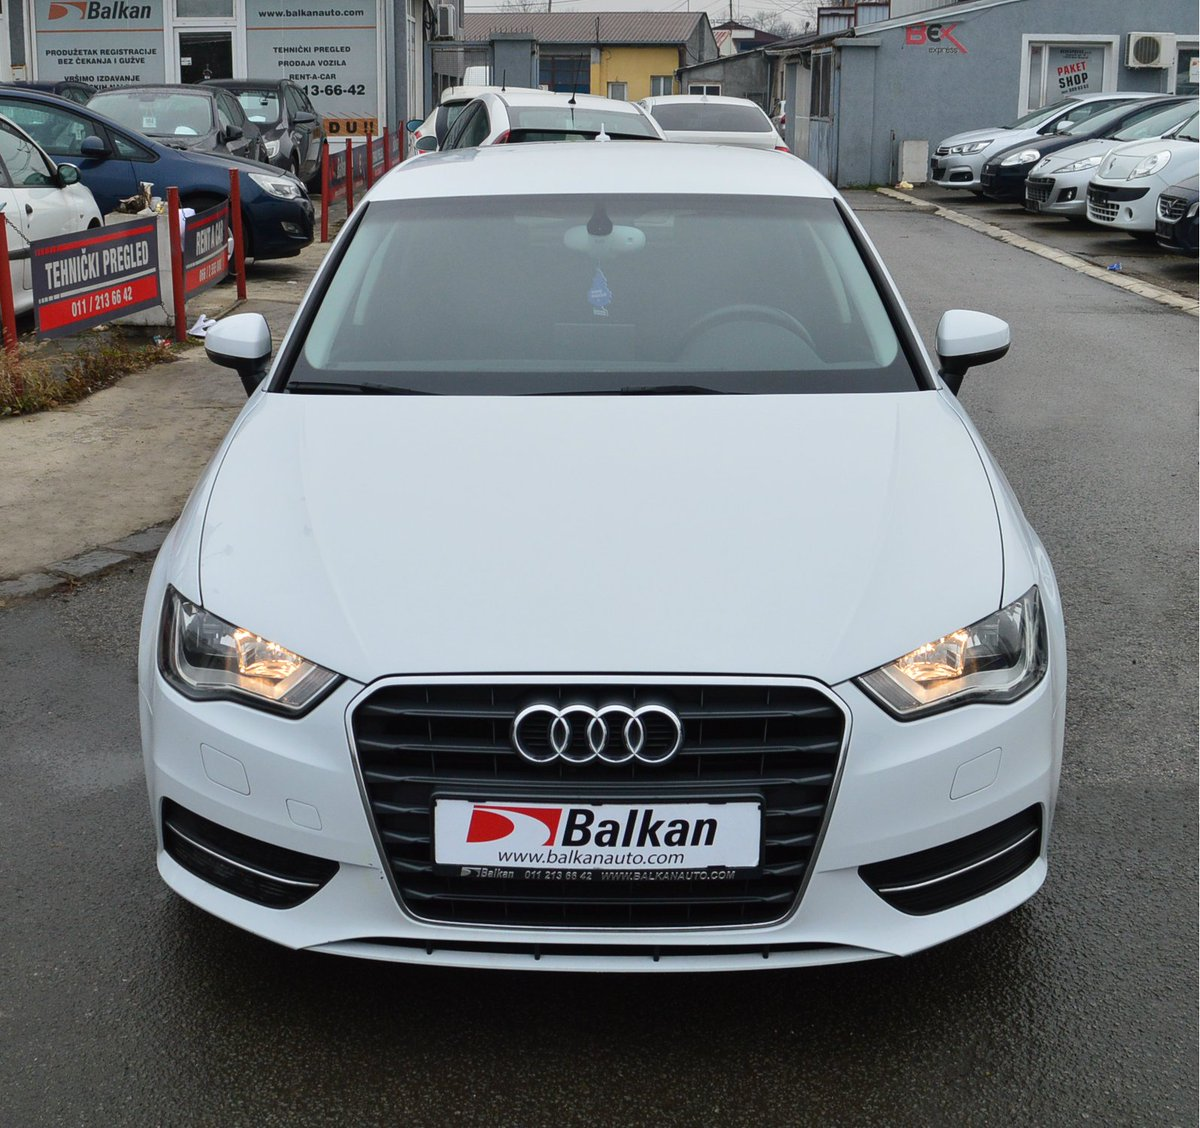 Balkan Auto على تويتر Audi A3 2013god Više Info Https